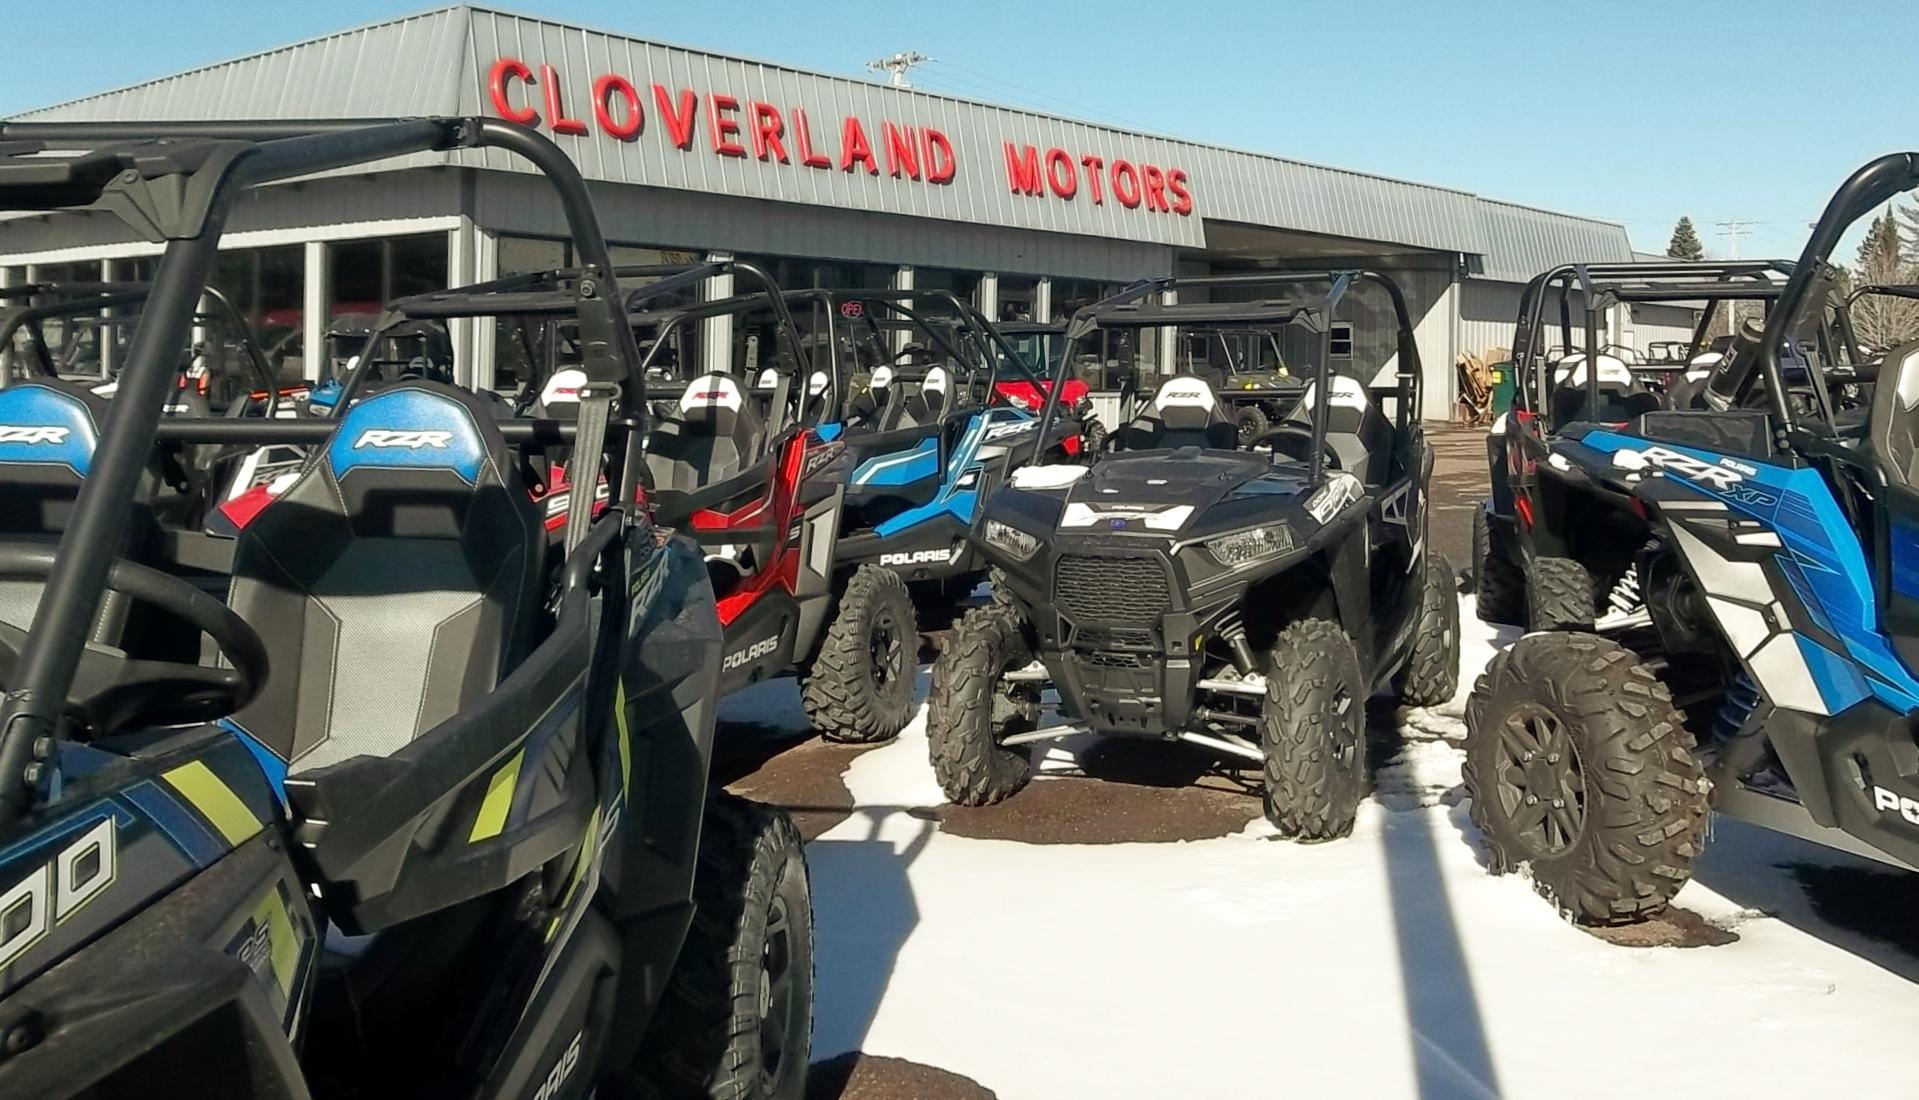 Cloverland Motors Inc